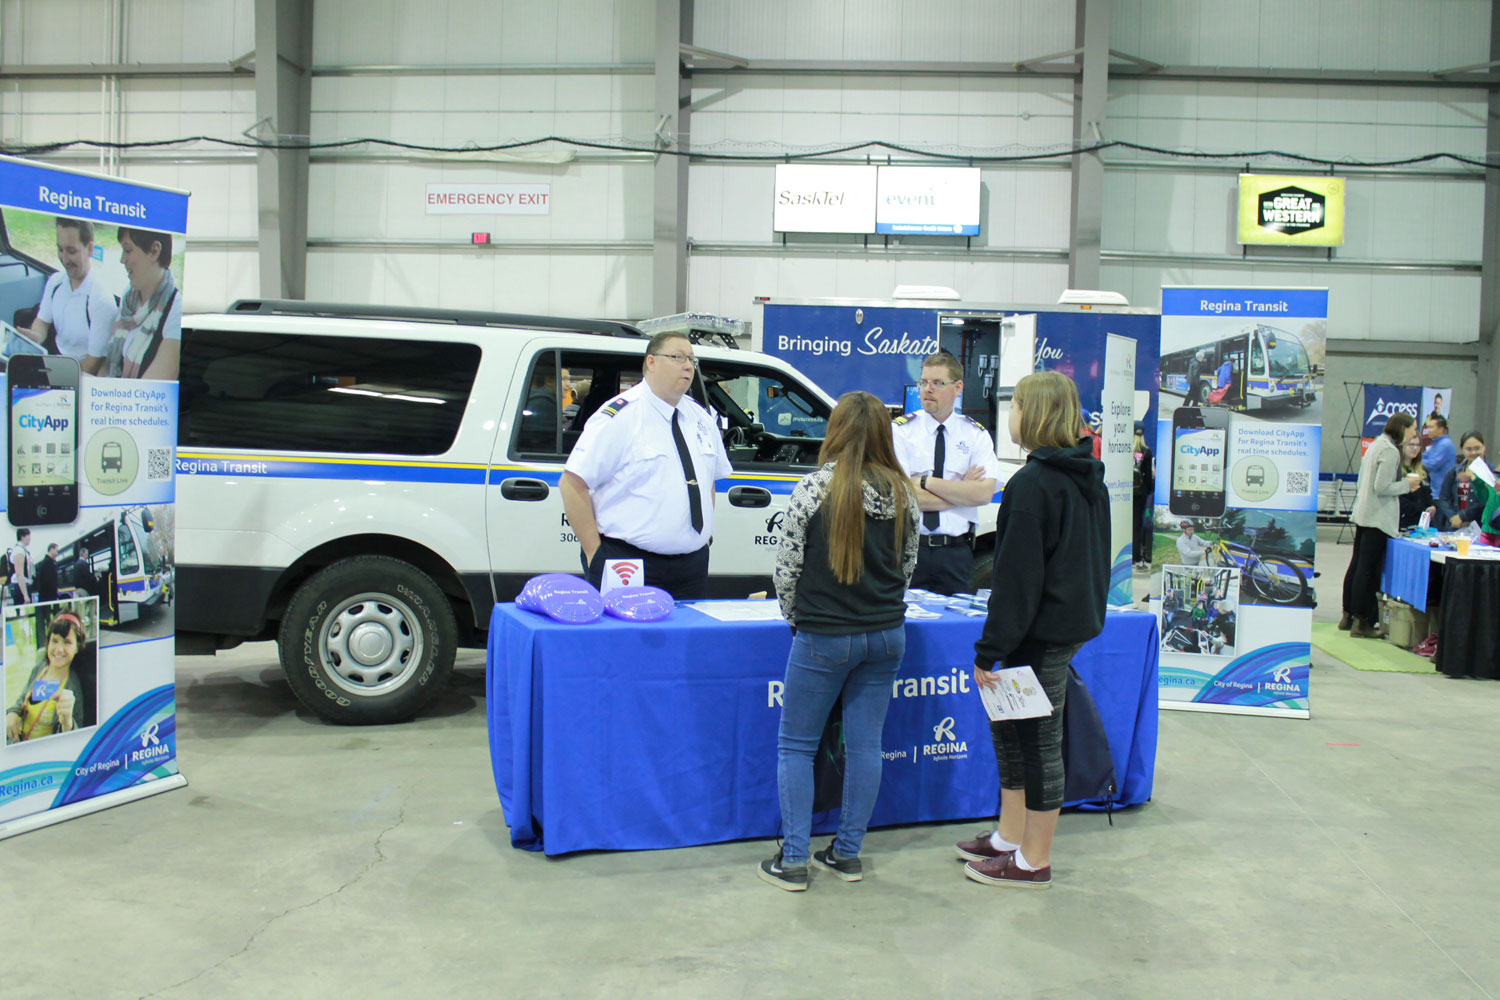 Checking out the Regina City Transportation booth.